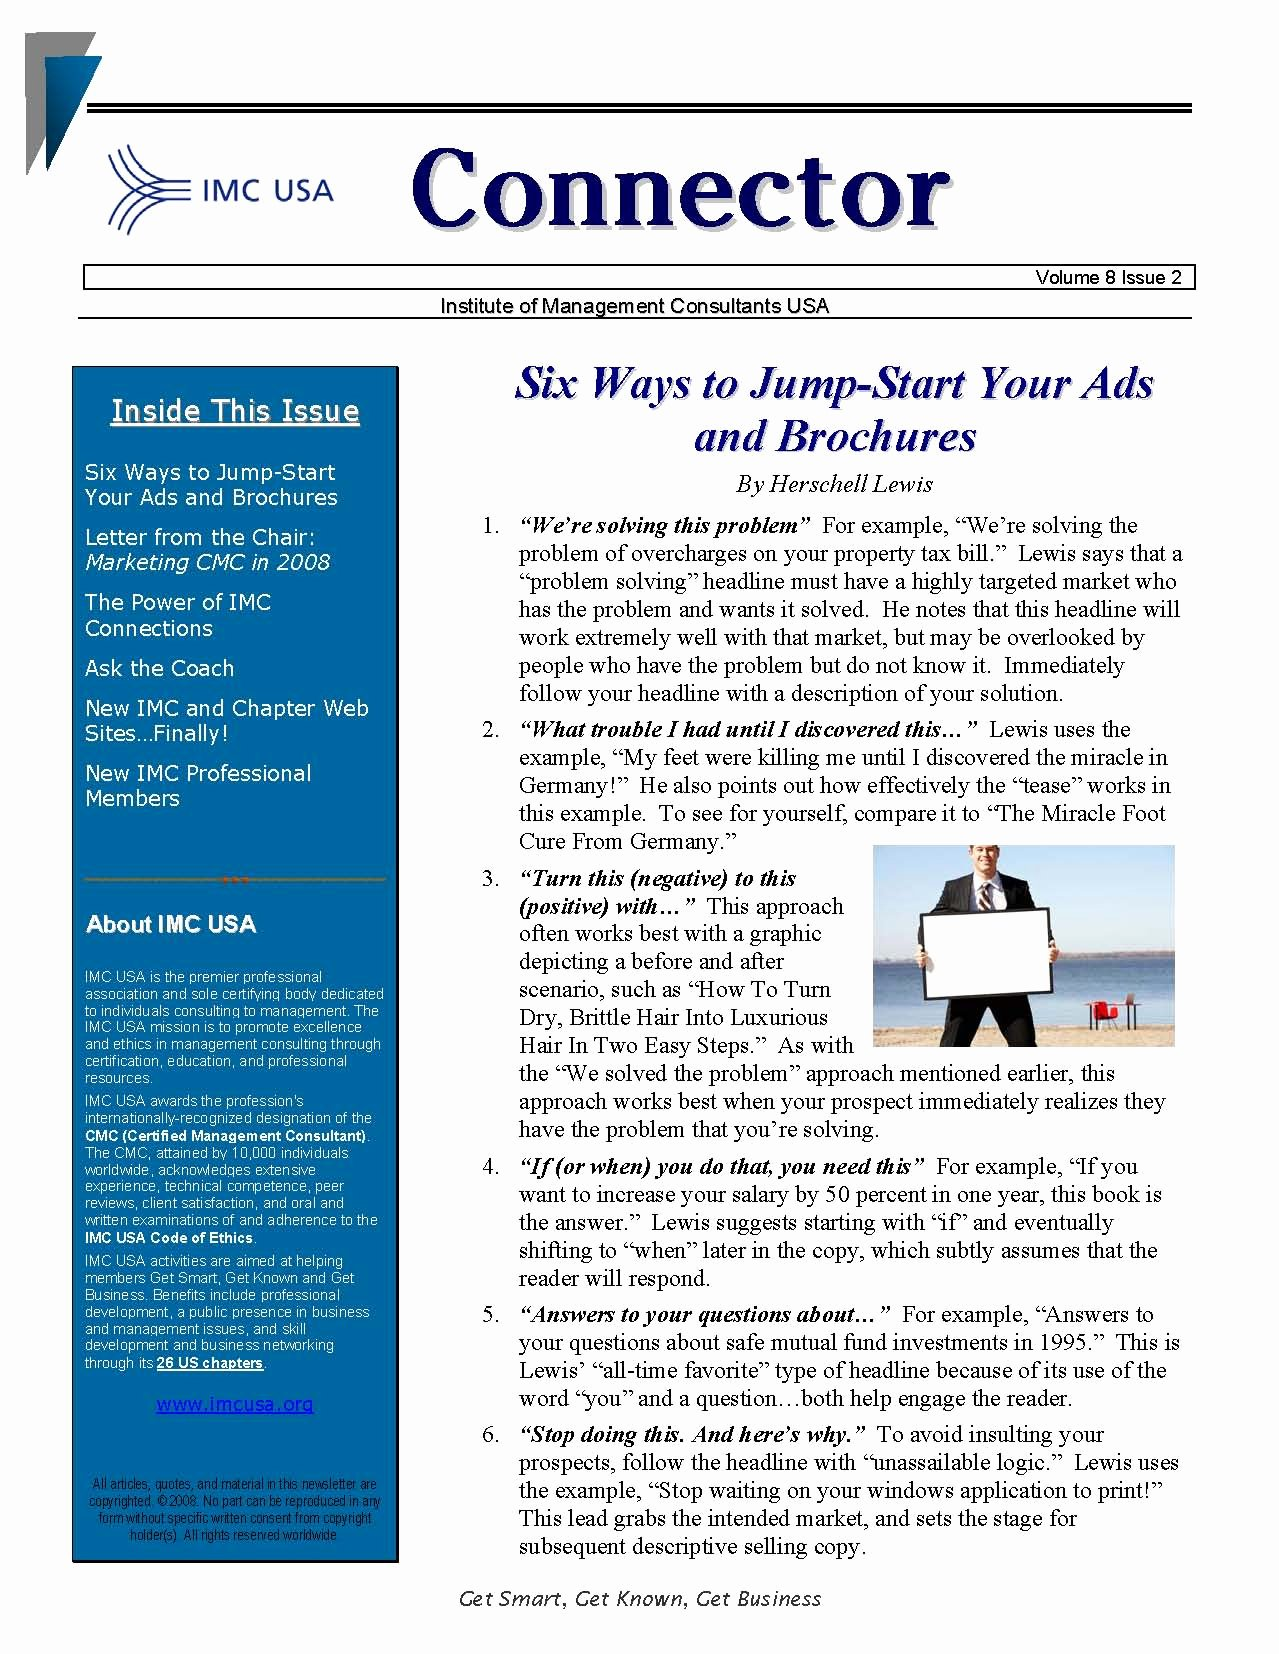 One Page Newsletter Template Best Of Email Marketing Boiler Plate Newsletters Free Newsletter